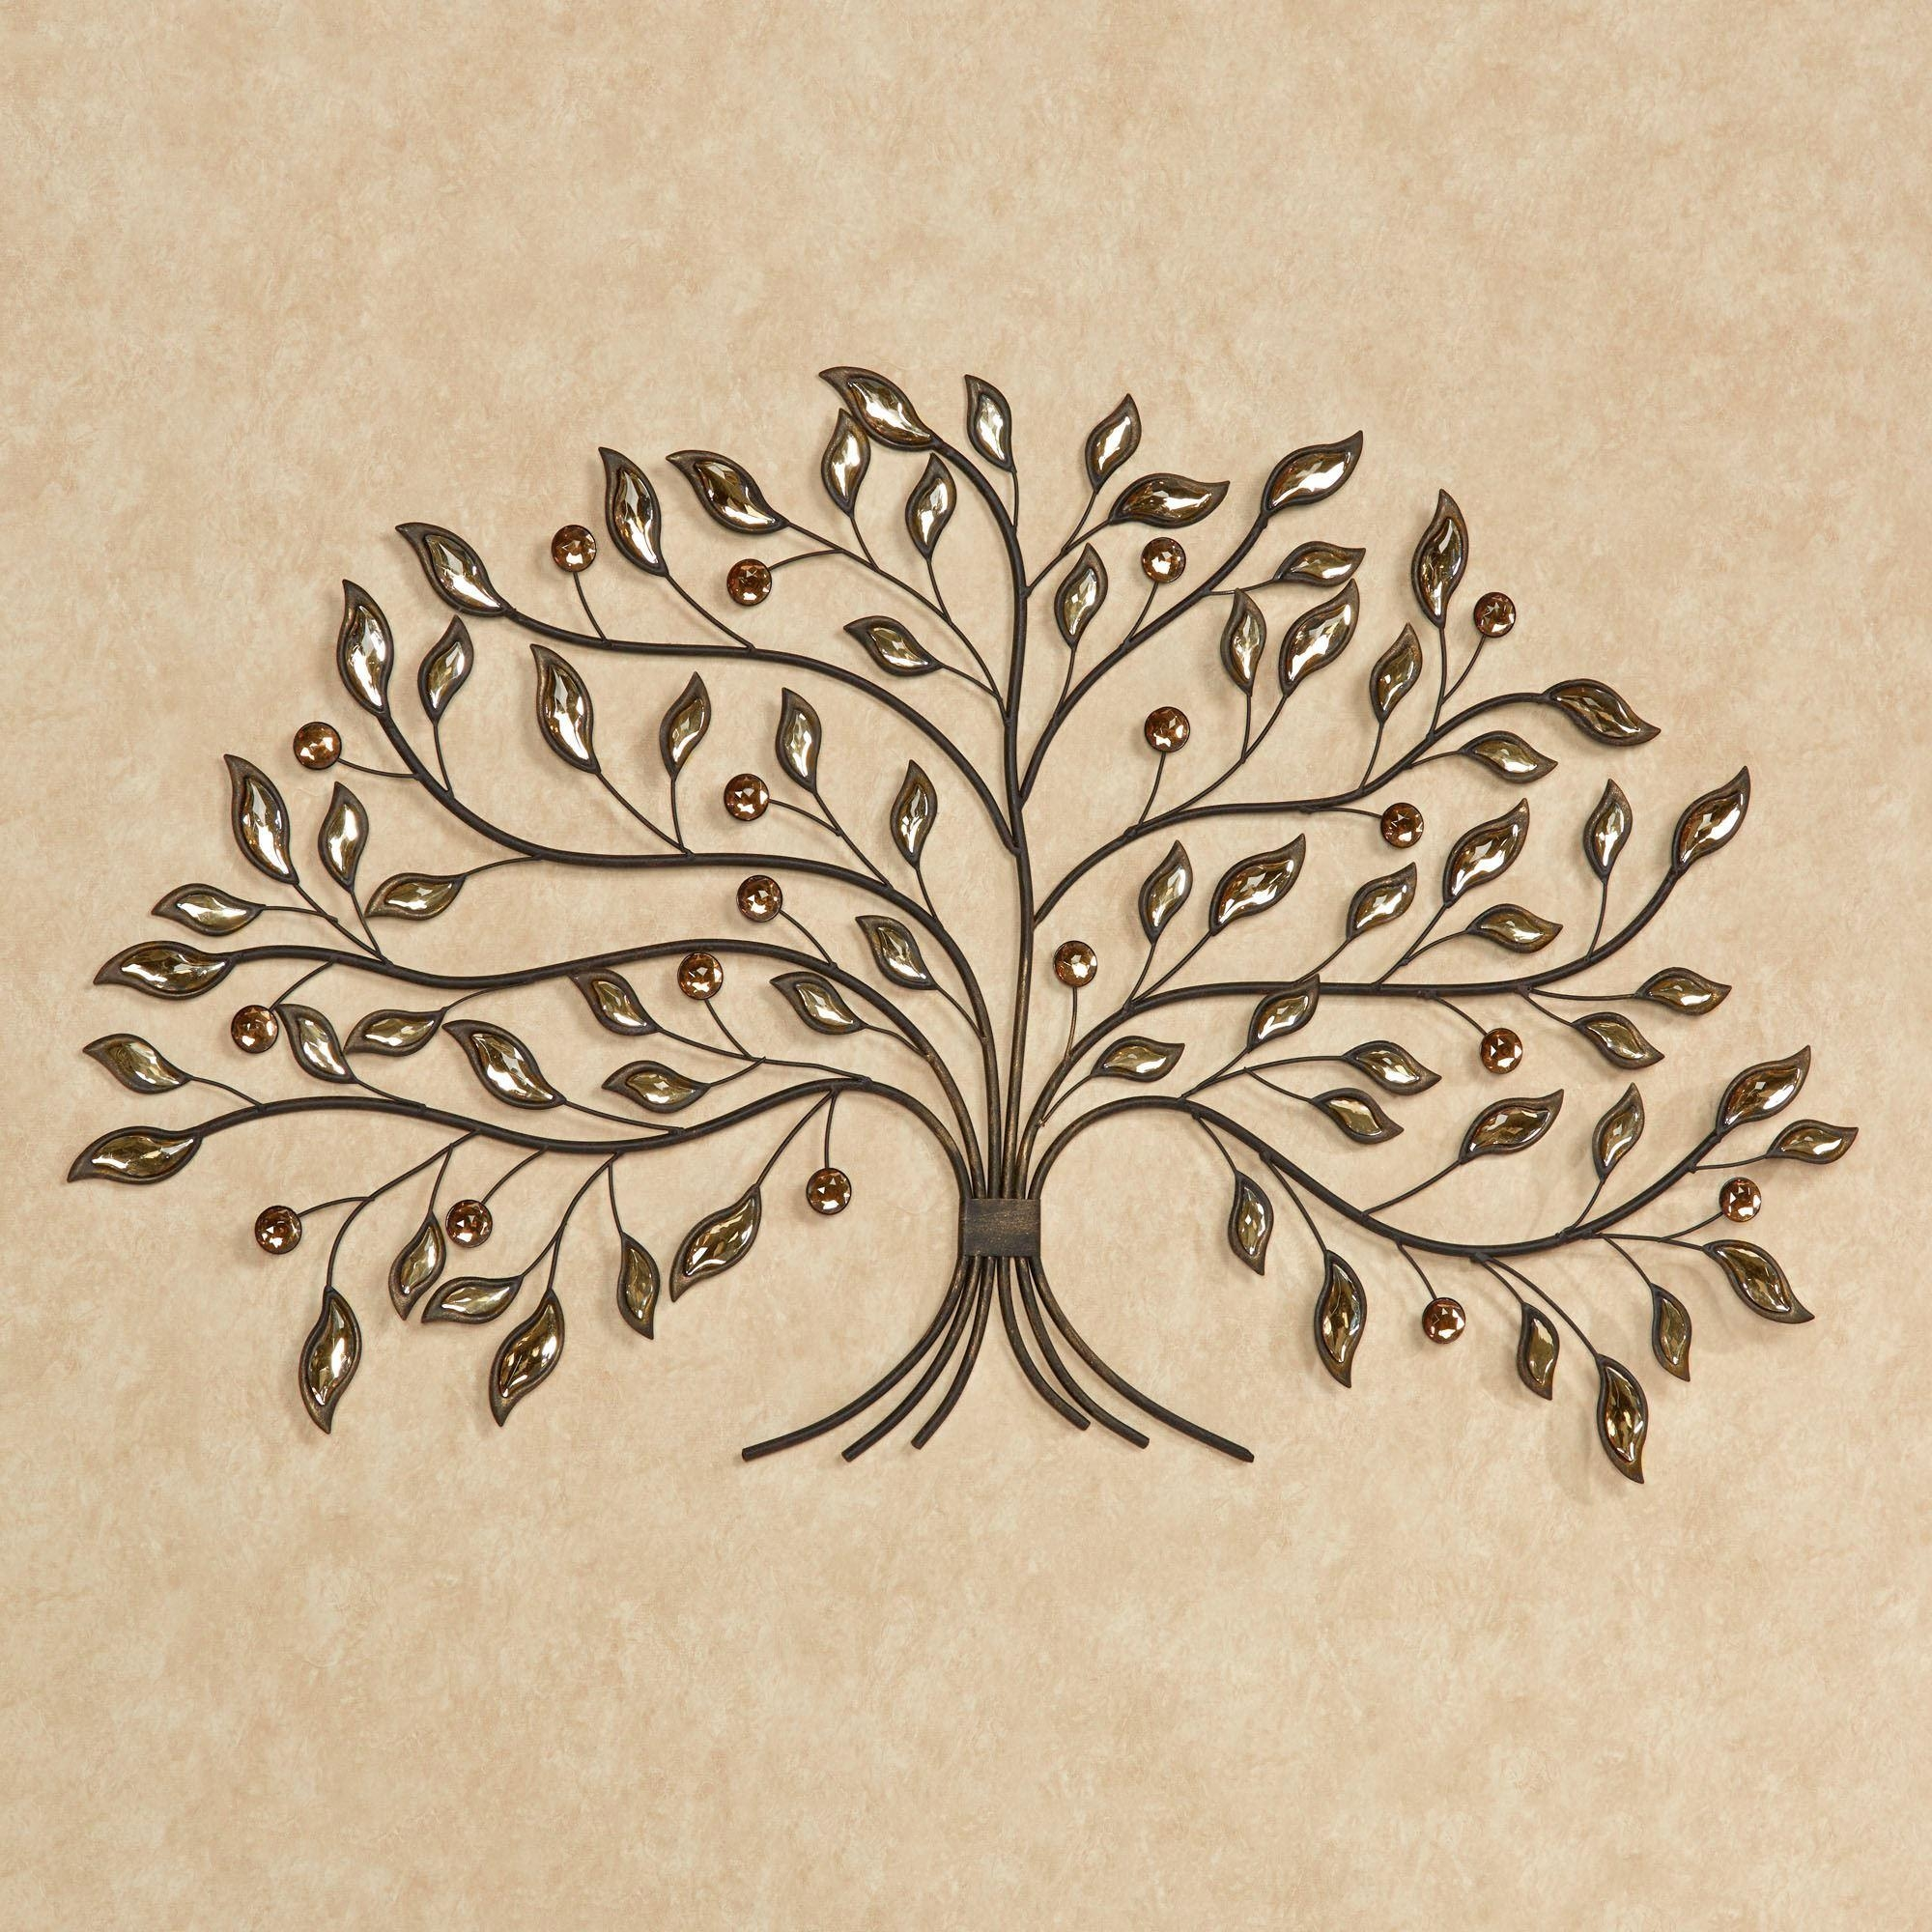 Alexandra Vining Gem Tree Metal Wall Art Regarding Tree Wall Art Sculpture (Image 1 of 20)